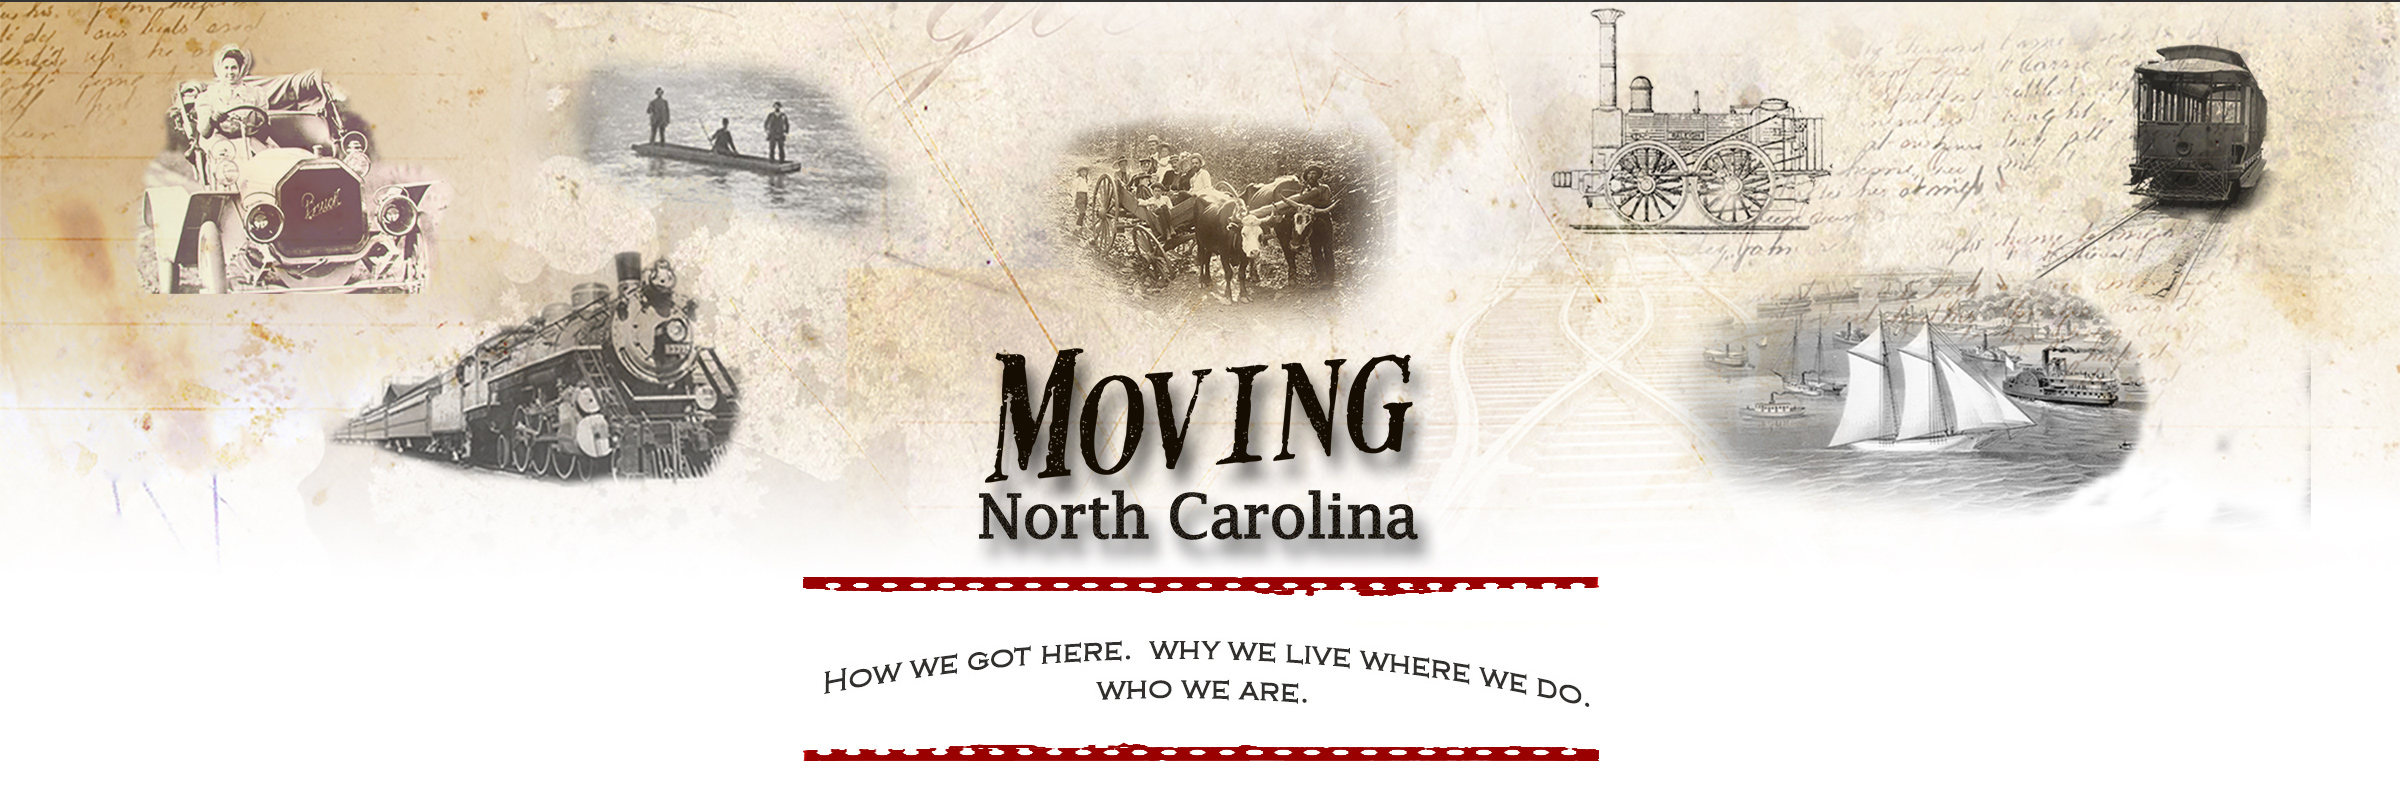 "This is a graphic header showing various historic transportation images and the title Moving North Carolina, as well as the subtext, ""How we got here. Why we live where we do. Who we are."""